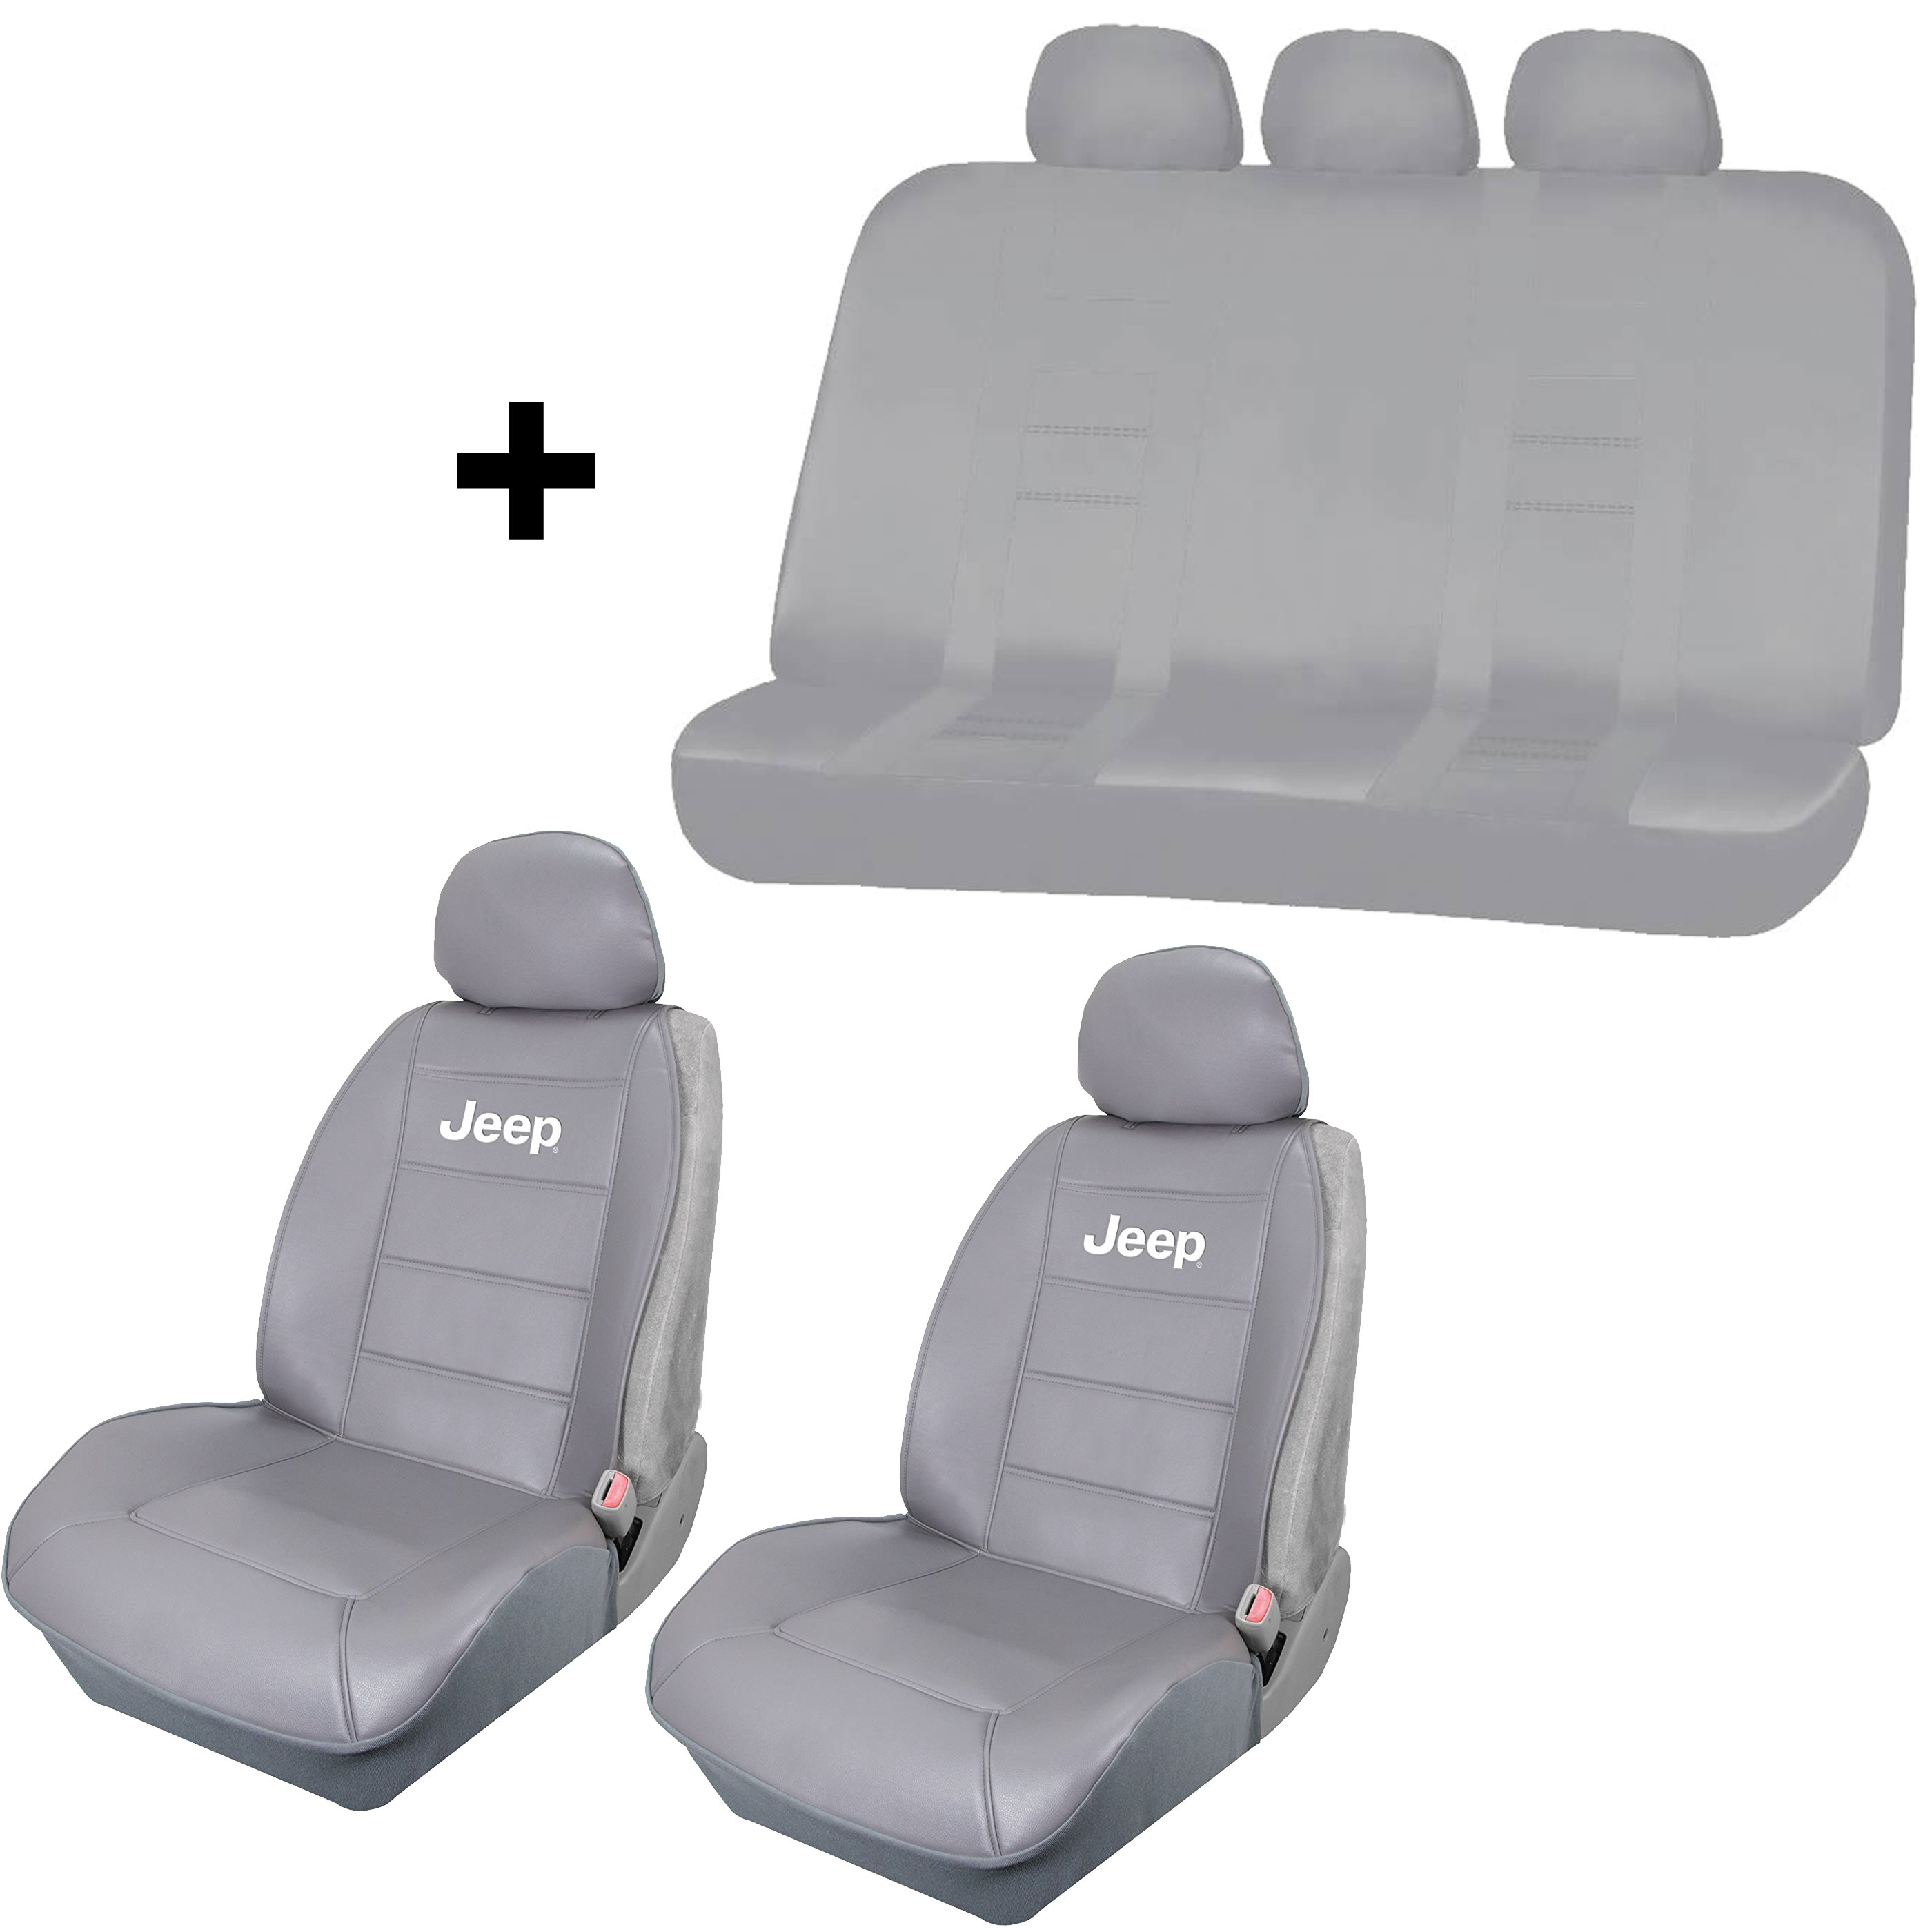 2 Solid Gray Synthetic Leather Sideless Seat Covers & Free UAA INC. Universal Gray Bench Car Truck SUV Van for Jeep